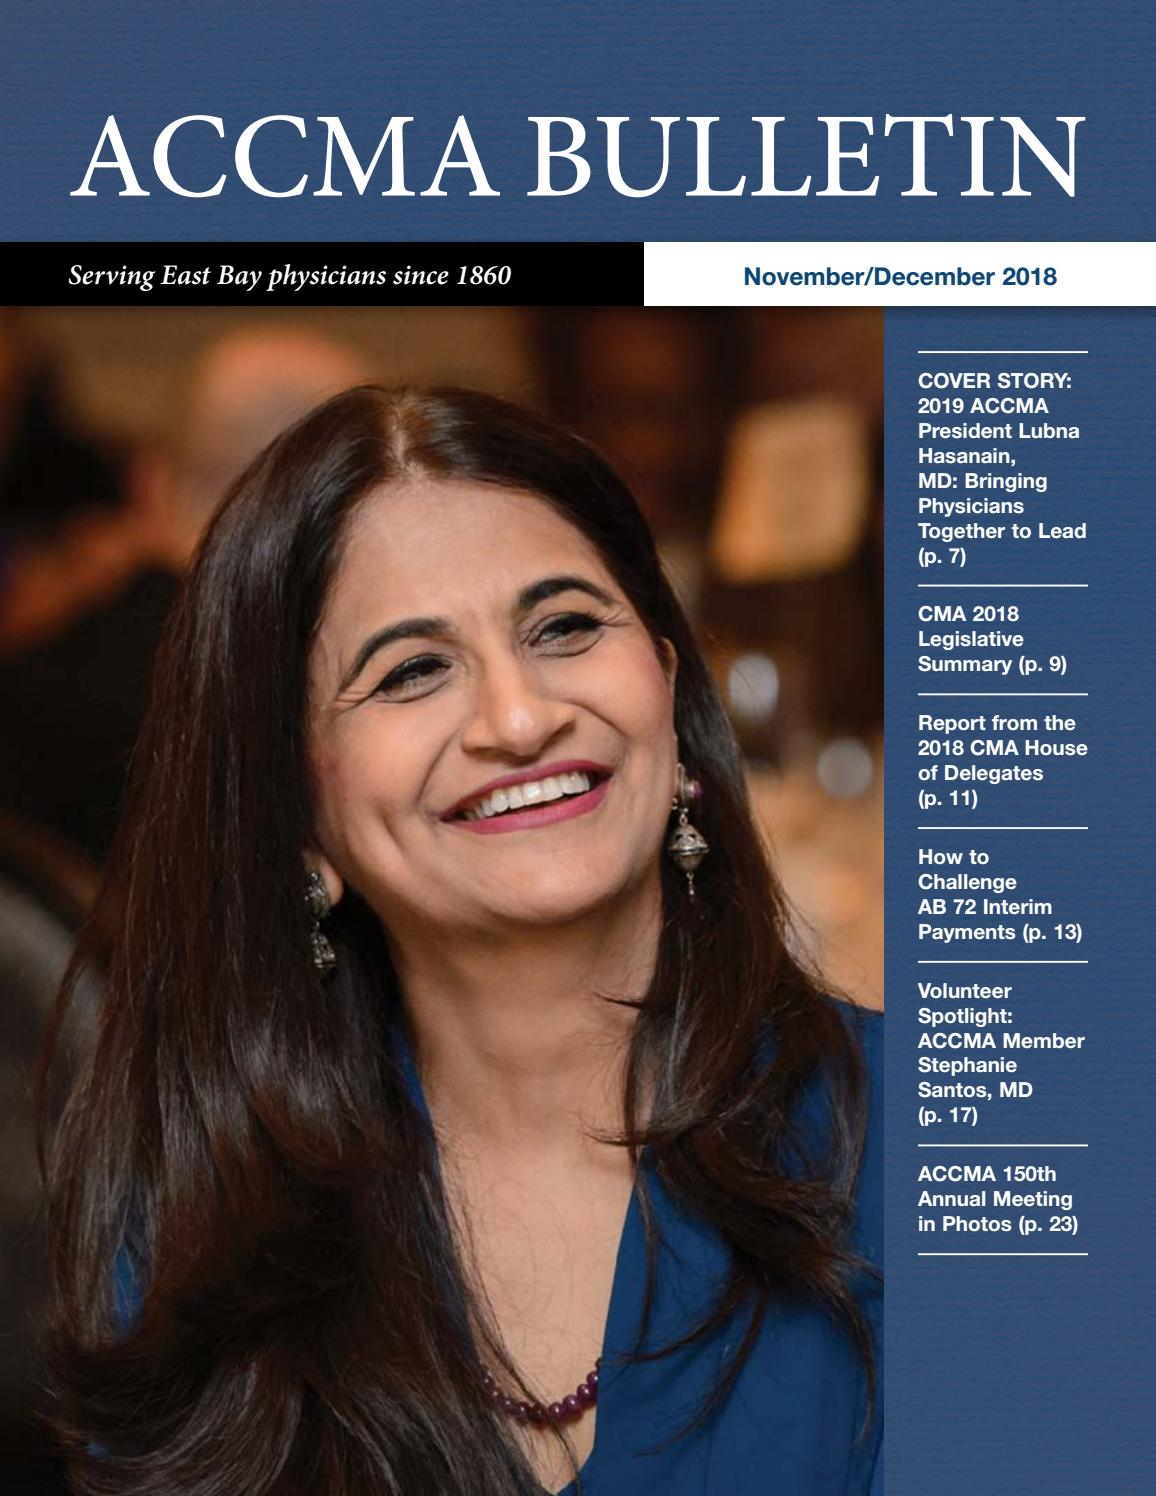 ACCMA November/December 2018 Bulletin by ACCMA - issuu